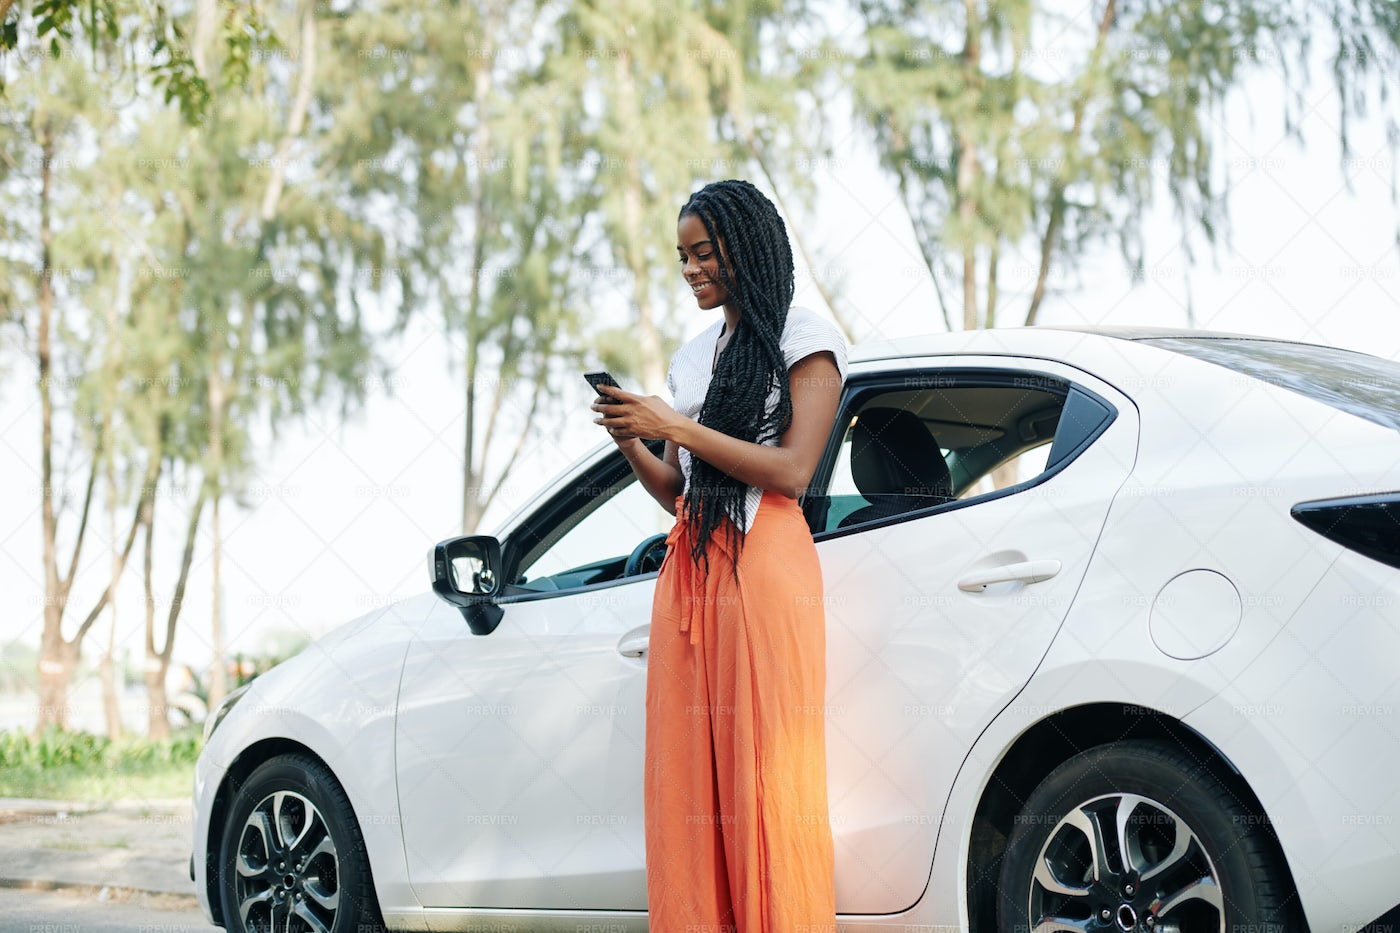 Texting In Front Of Car: Stock Photos